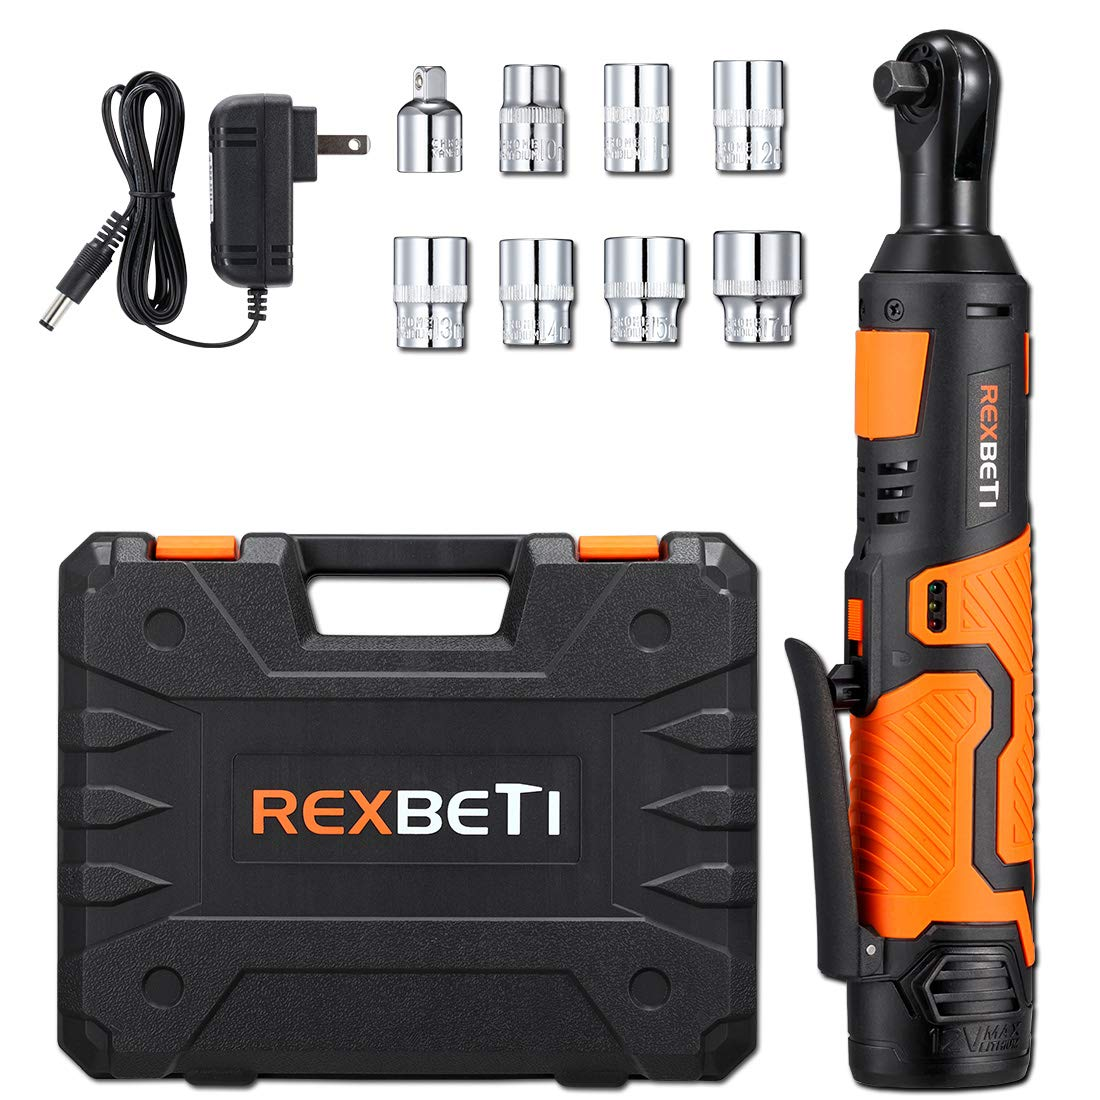 REXBETI Cordless 3/8'' Electric Ratchet Wrench Set with 12V Lithium-Ion Battery and Charger Kit, Include 7-piece 3/8'' Metric Sockets and 1-piece 1/4'' Socket Adapter, 45Nm of Maximum Torque by REXBETI (Image #1)